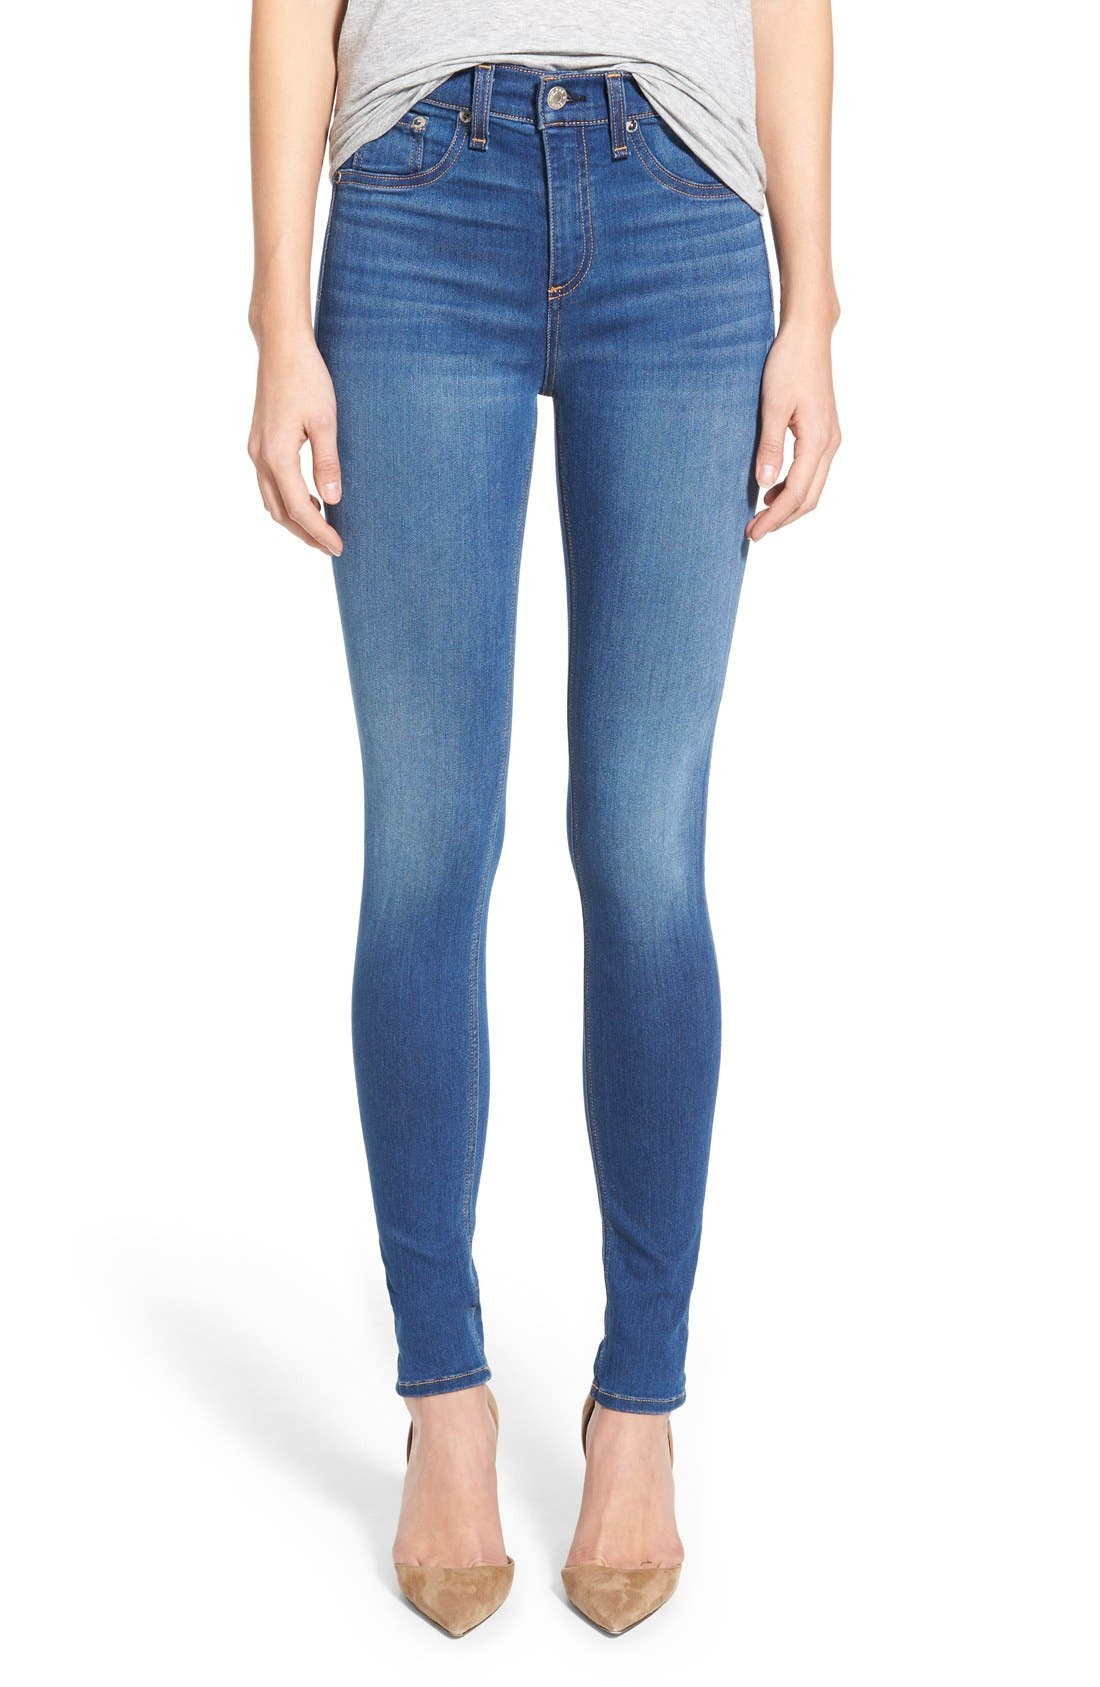 Alternate Image 1 Selected - rag & bone/JEAN High Rise Skinny Jeans (Houston)